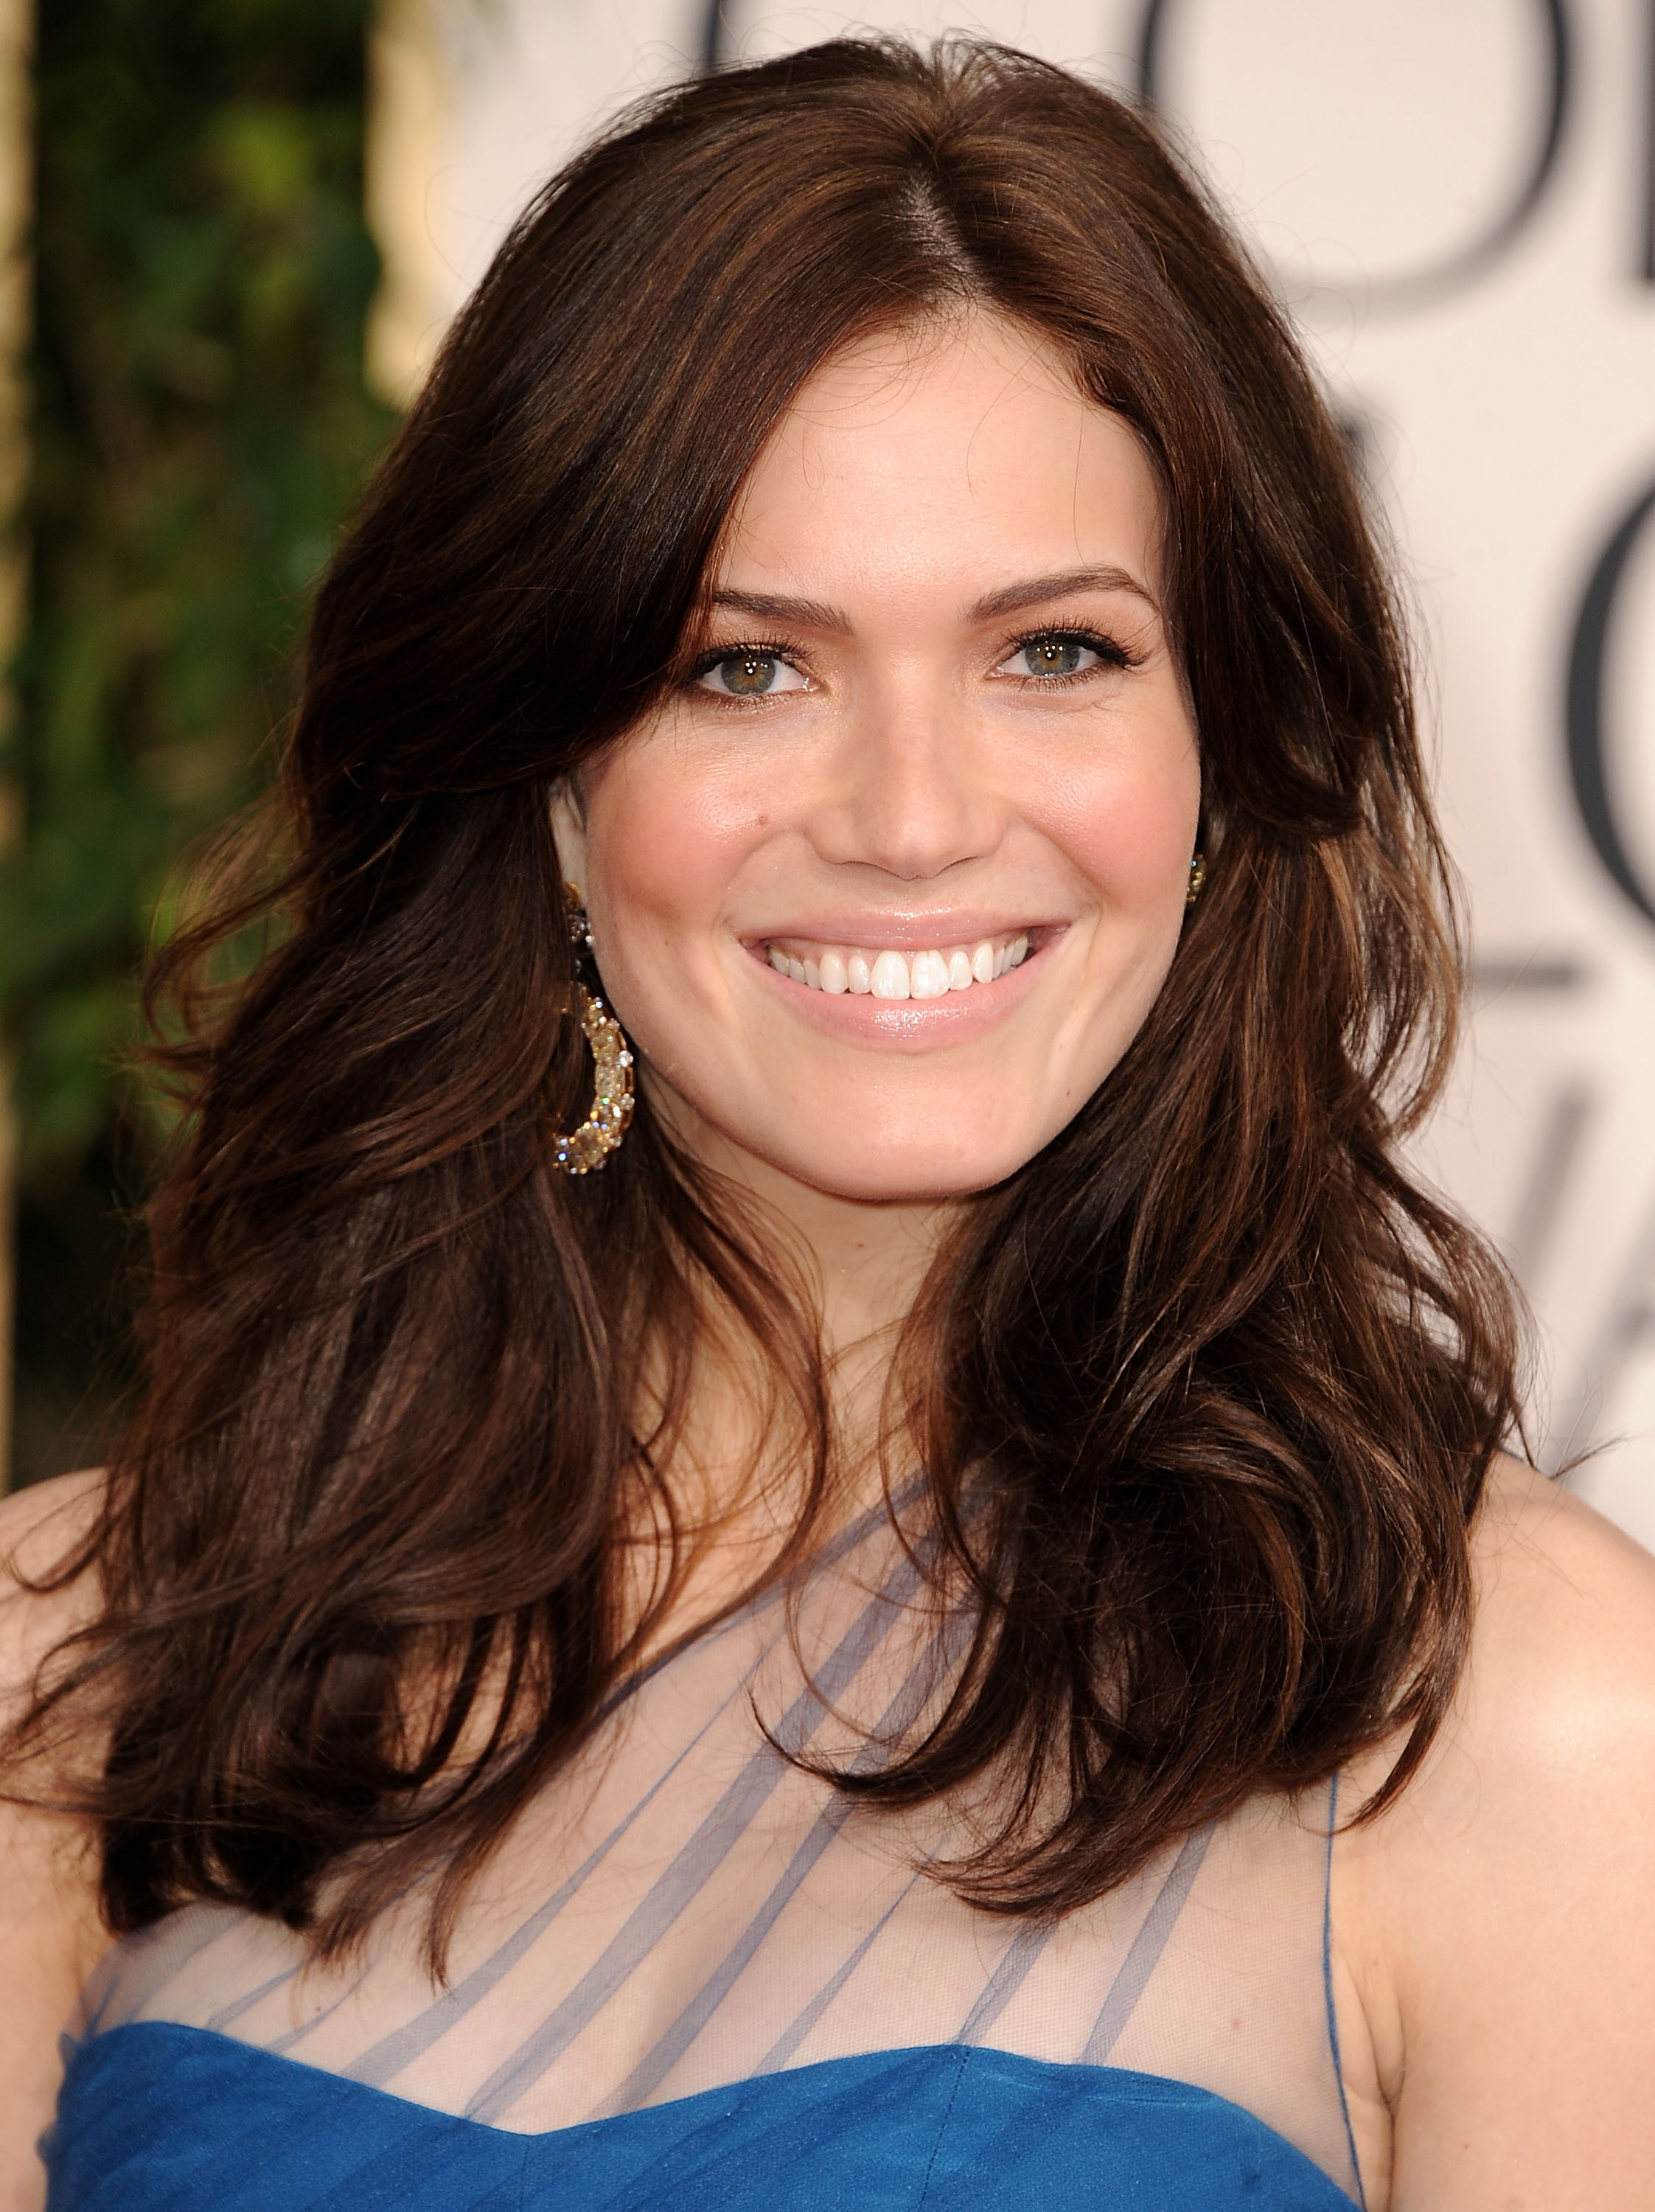 Nice Images Collection: Mandy Moore Desktop Wallpapers